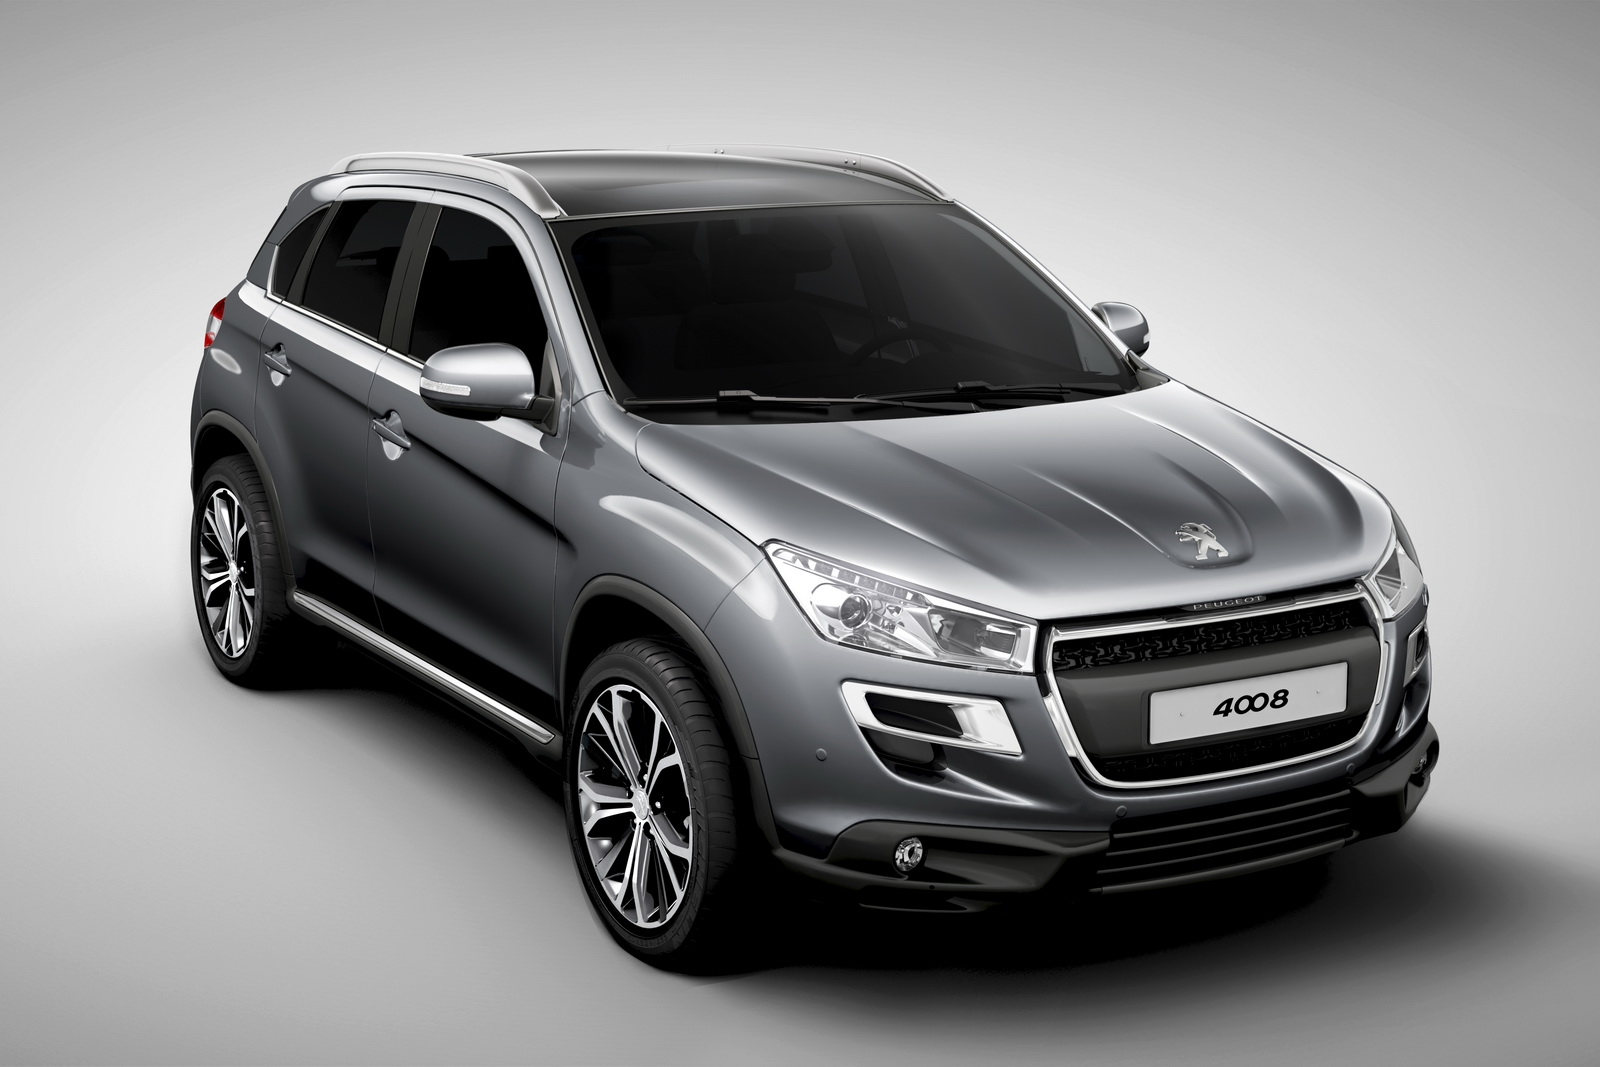 mitsubishi mirage with Peugeot 4008 Photo on Products likewise Watch likewise Watch additionally 2018 Mitsubishi Eclipse Cross Debuts With A 1 5 Turbo Starts At 23295 together with Peugeot 4008 Photo.